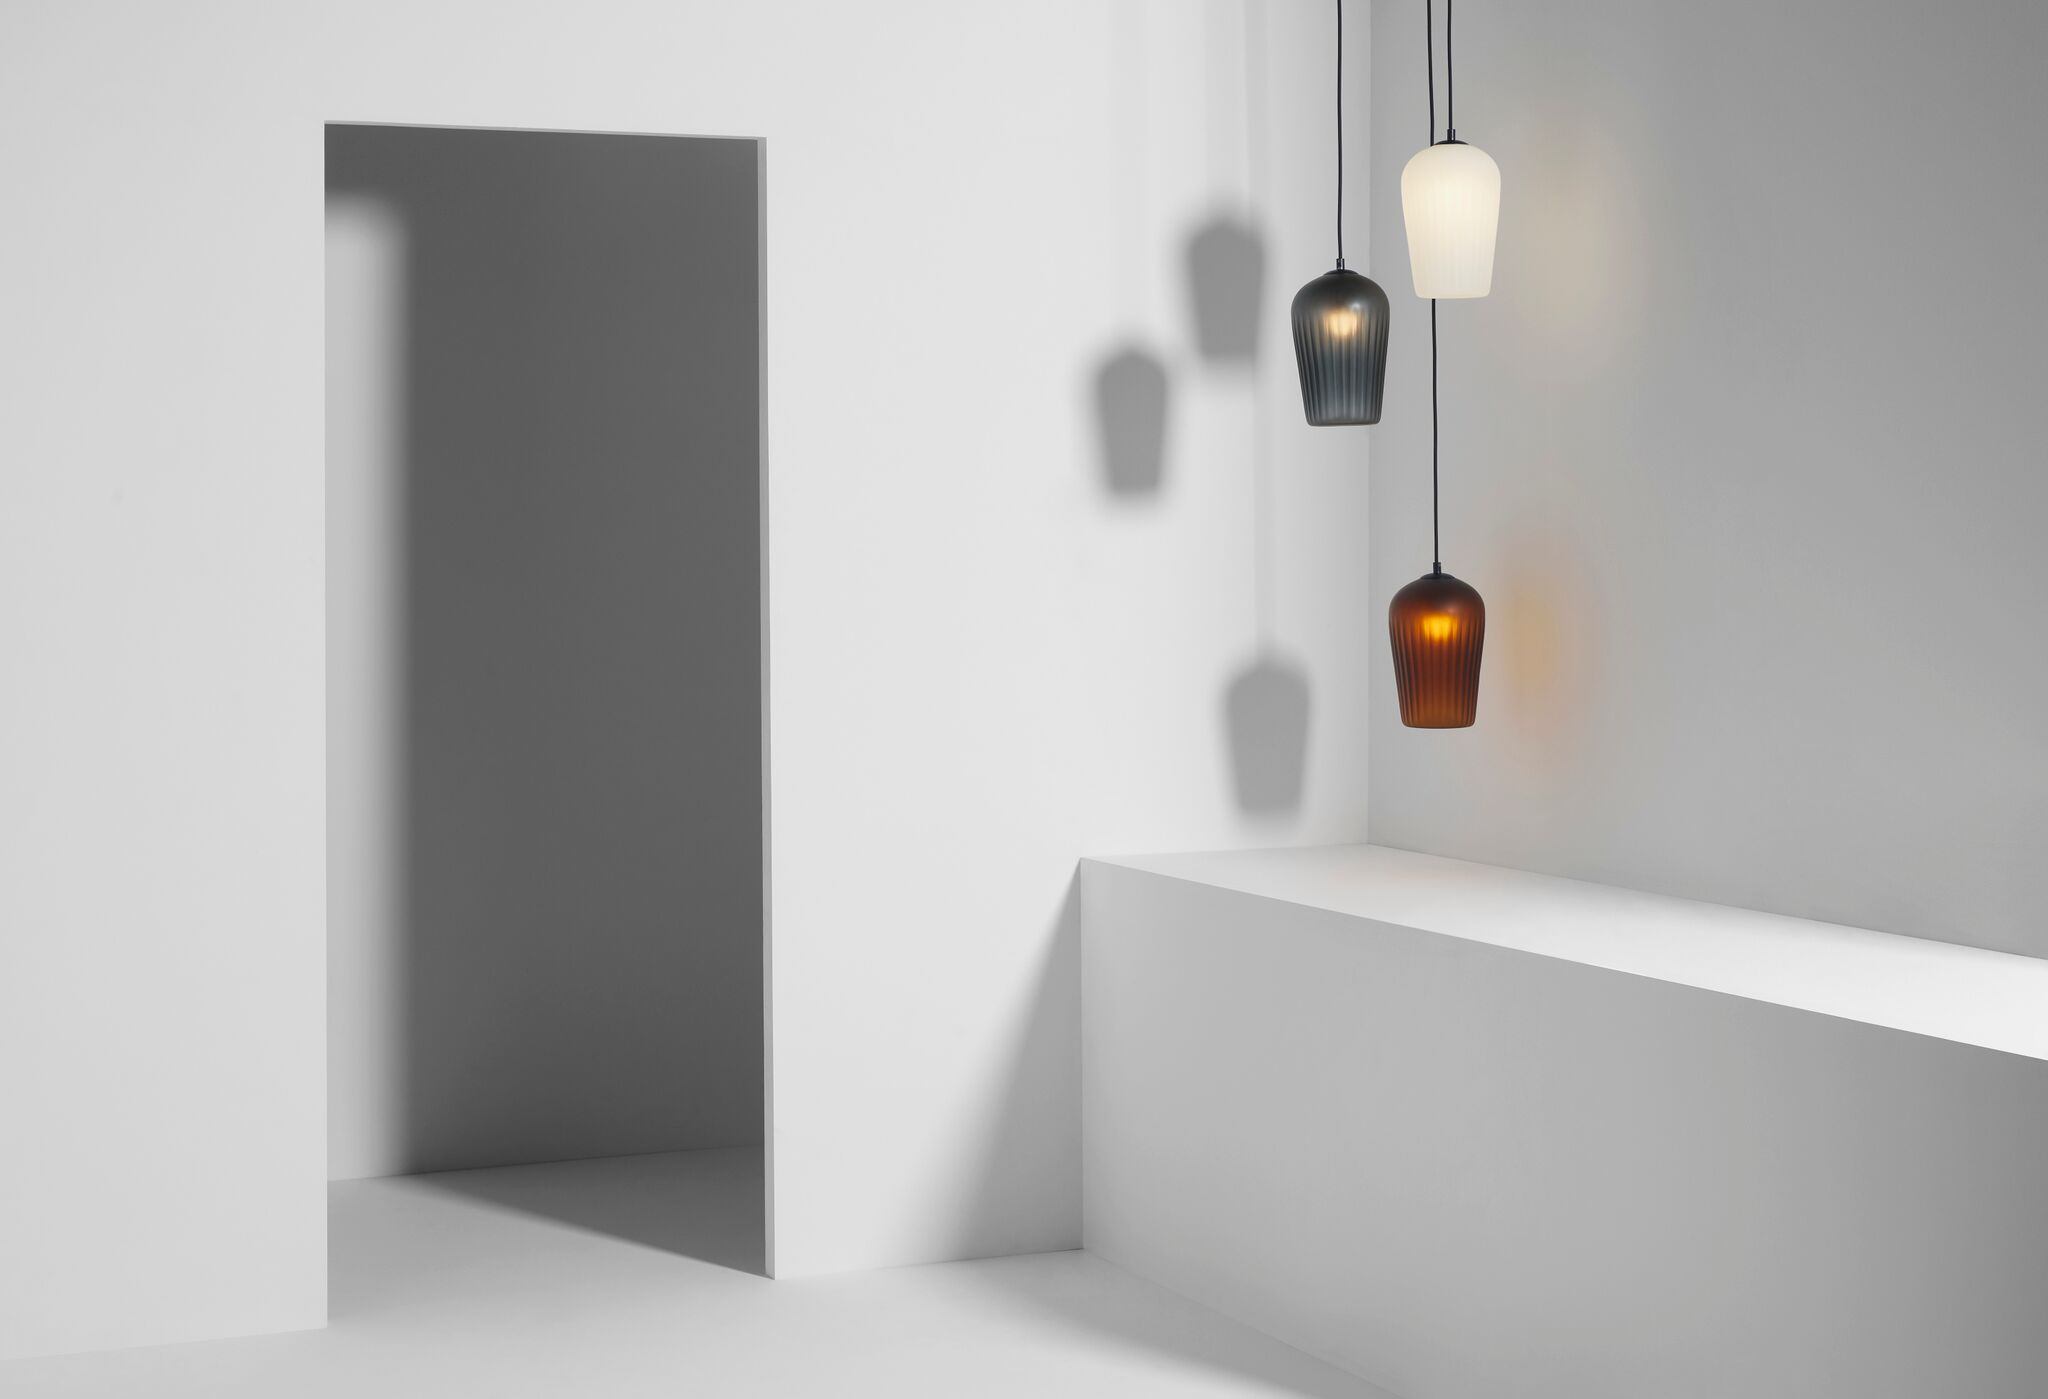 Locally designed lighting and furniture by Luke Mills of LUMIL